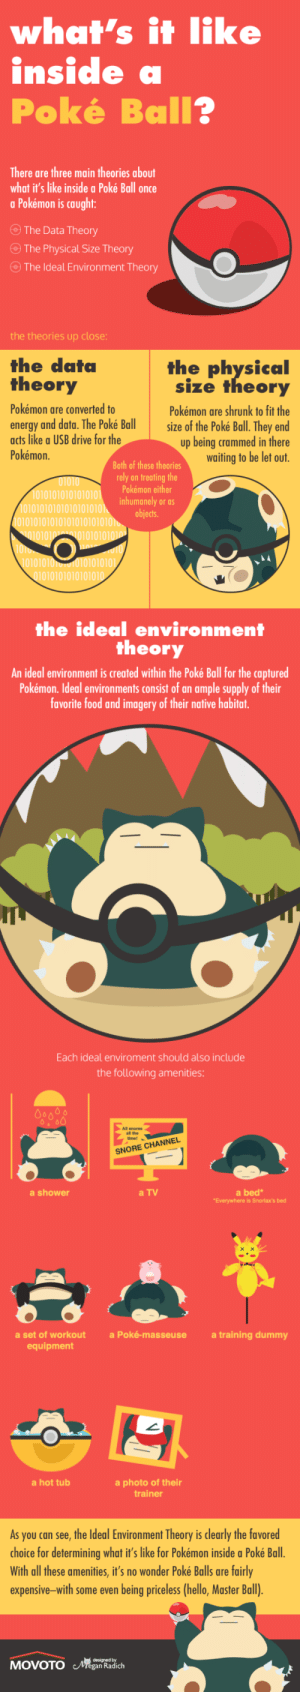 """Consist: what's it like  inside a  Poké Ball?  There are three main theories about  what it's like inside a Poké Ball once  a Pokémon is caught:  O The Data Theory  O The Physical Size Theory  The Ideal Environment Theory  the theories up close:   the data  theory  the physical  size theory  Pokémon are converted to  Pokémon are shrunk to fit the  size of the Poké Ball. They end  up being crammed in there  waiting to be let out.  energy and data. The Poké Ball  acts like a USB drive for the  Pokémon.  Both of these theories  rely on treating the  Pokémon either  01010  10101010101010101  inhumanely or as  objects.  10101010101010101010  101010101010101010101010  0101010101010101010  1010  1010101010101010101  01010101010101010   the ideal environment  theory  An ideal environment is created within the Poké Ball for the captured  Pokémon. Ideal environments consist of an ample supply of their  favorite food and imagery of their native habitat.   Each ideal enviroment should also include  the following amenities:  All anores  all the  time!  SNORE CHANNEL  a TV  a bed*  a shower  """"Everywhere is Snorlax's bed  a set of workout  equipment  a Poké-masseuse  a training dummy  a photo of their  trainer  a hot tub   As you can see, the Ideal Environment Theory is clearly the favored  choice for determining what it's like for Pokémon inside a Poké Bll.  With all these amenities, it's no wonder Poké Balls are fairly  expensive–with some even being priceless (hello, Master Ball).  designed by  MOVOTO Megan Radich"""